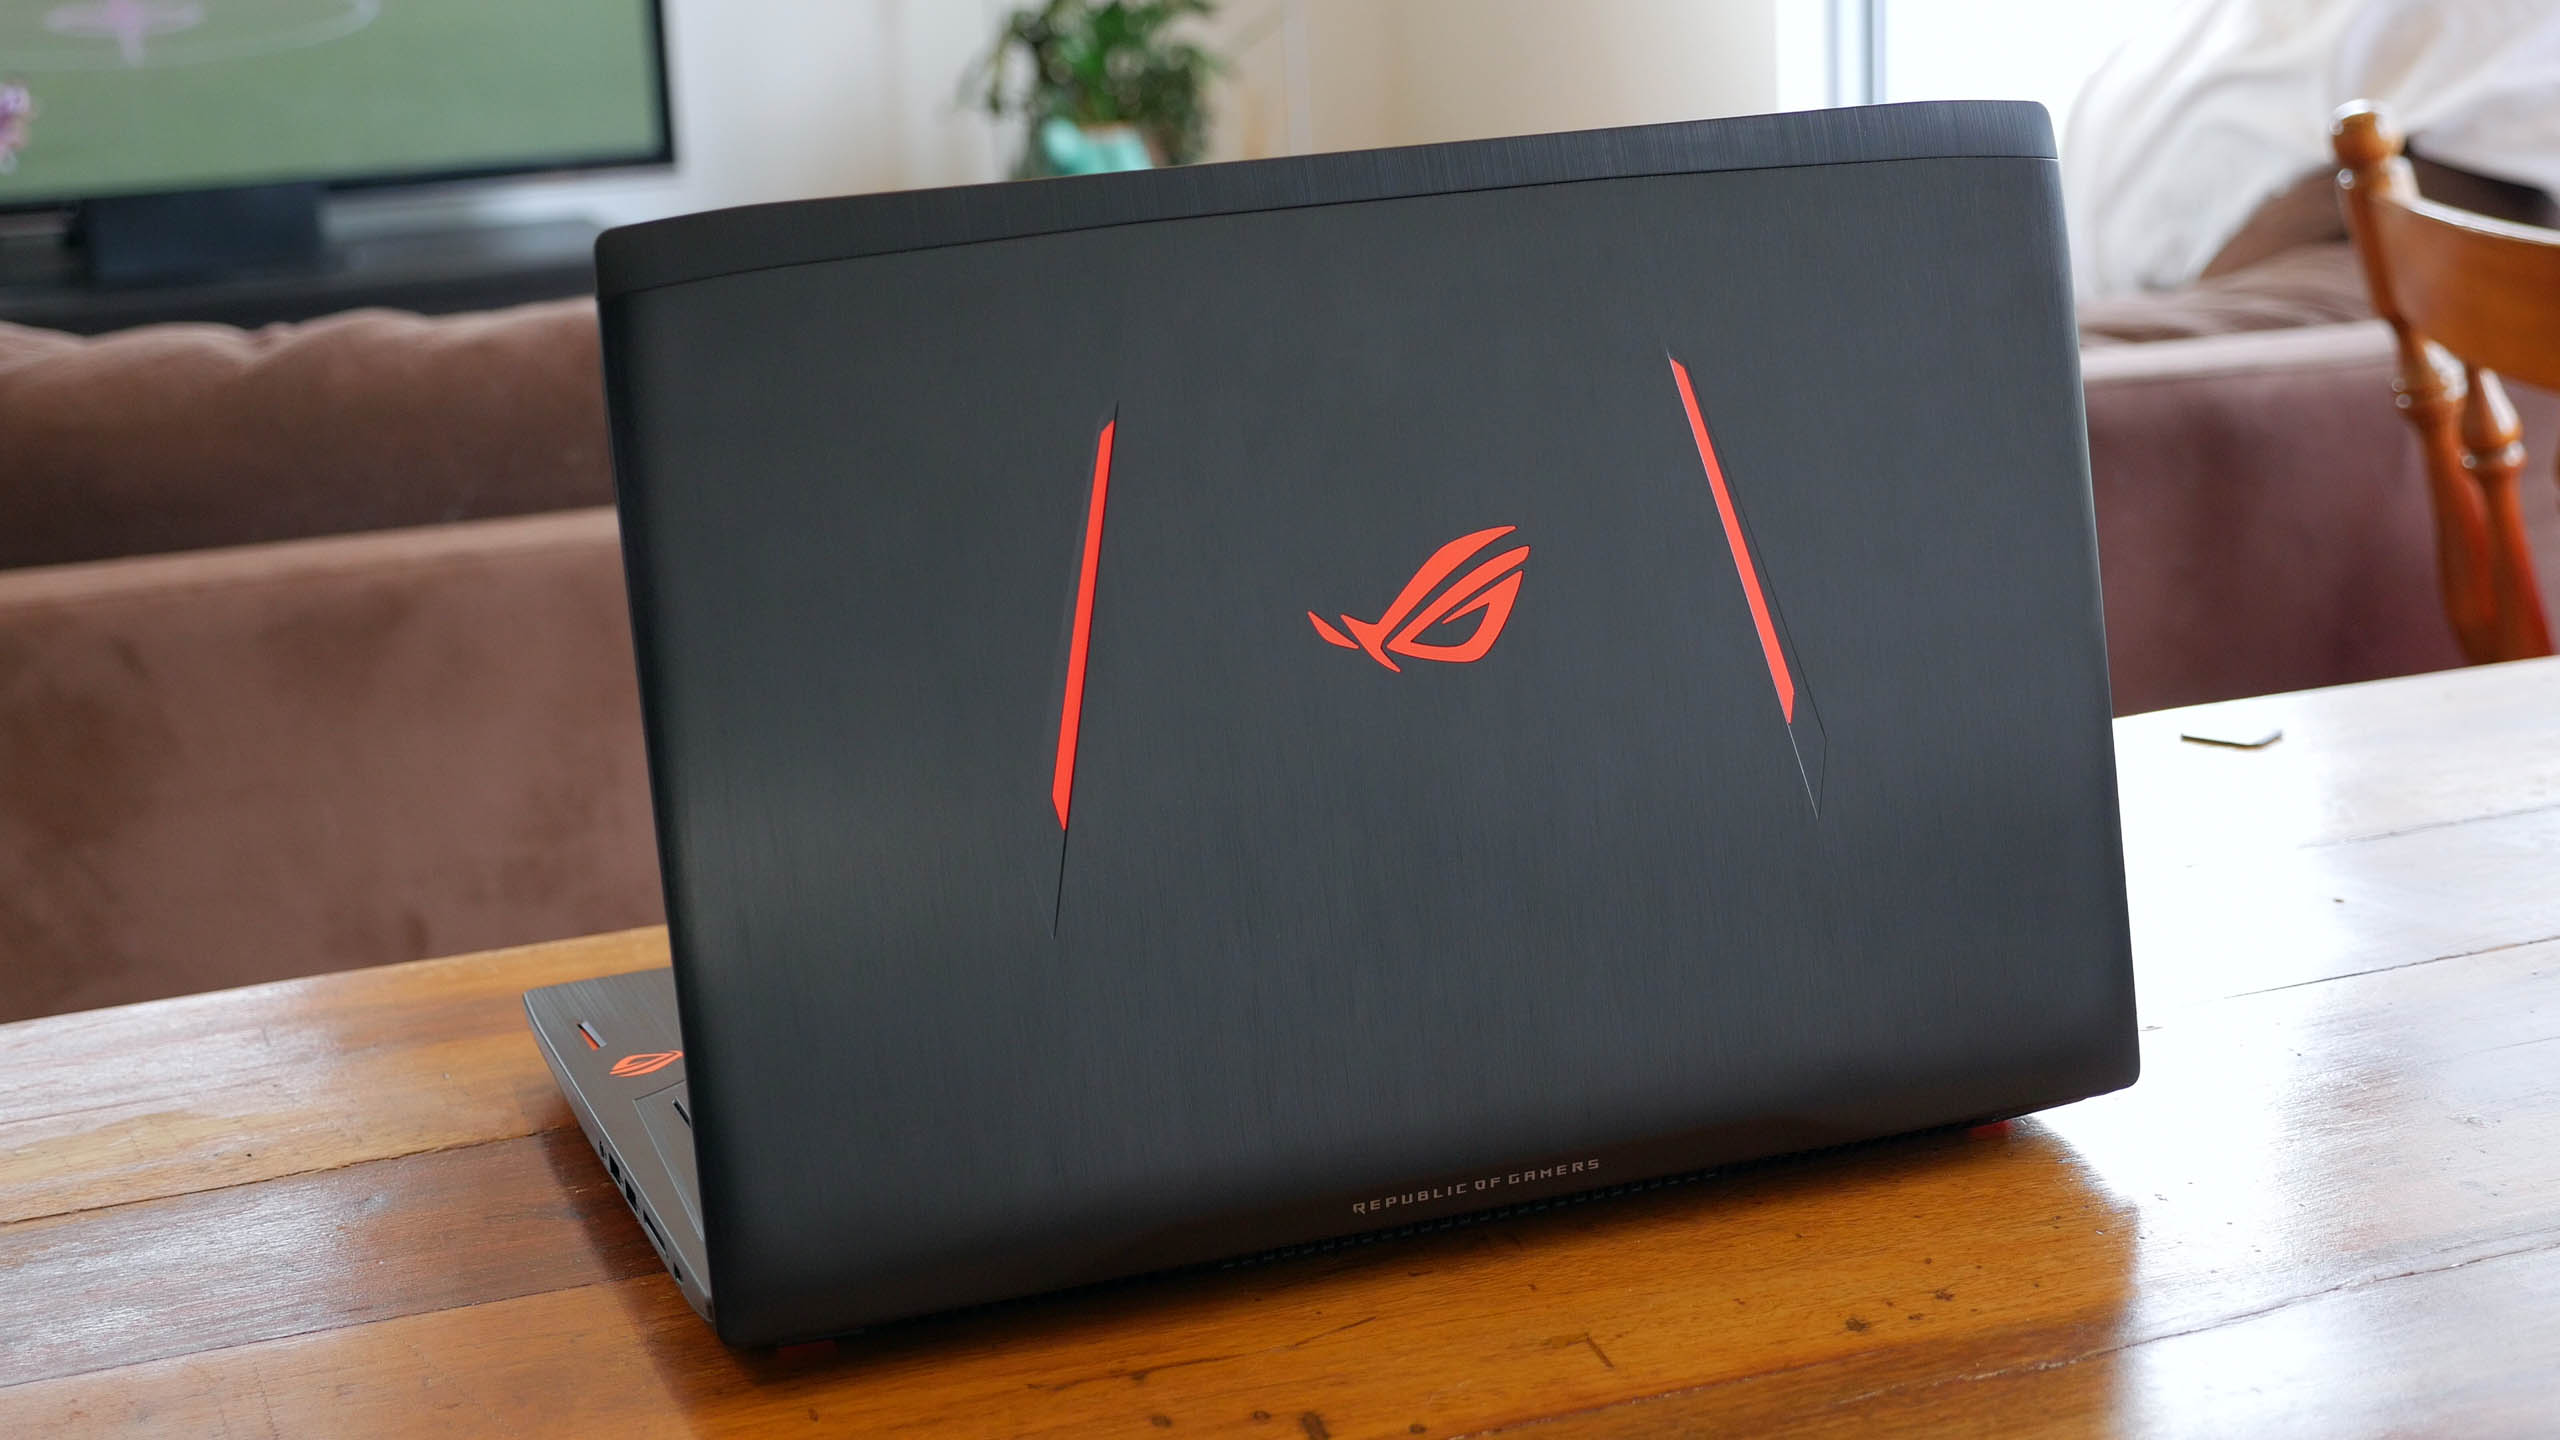 Asus ROG Strix GL502VS Review Photo Gallery - TechSpot